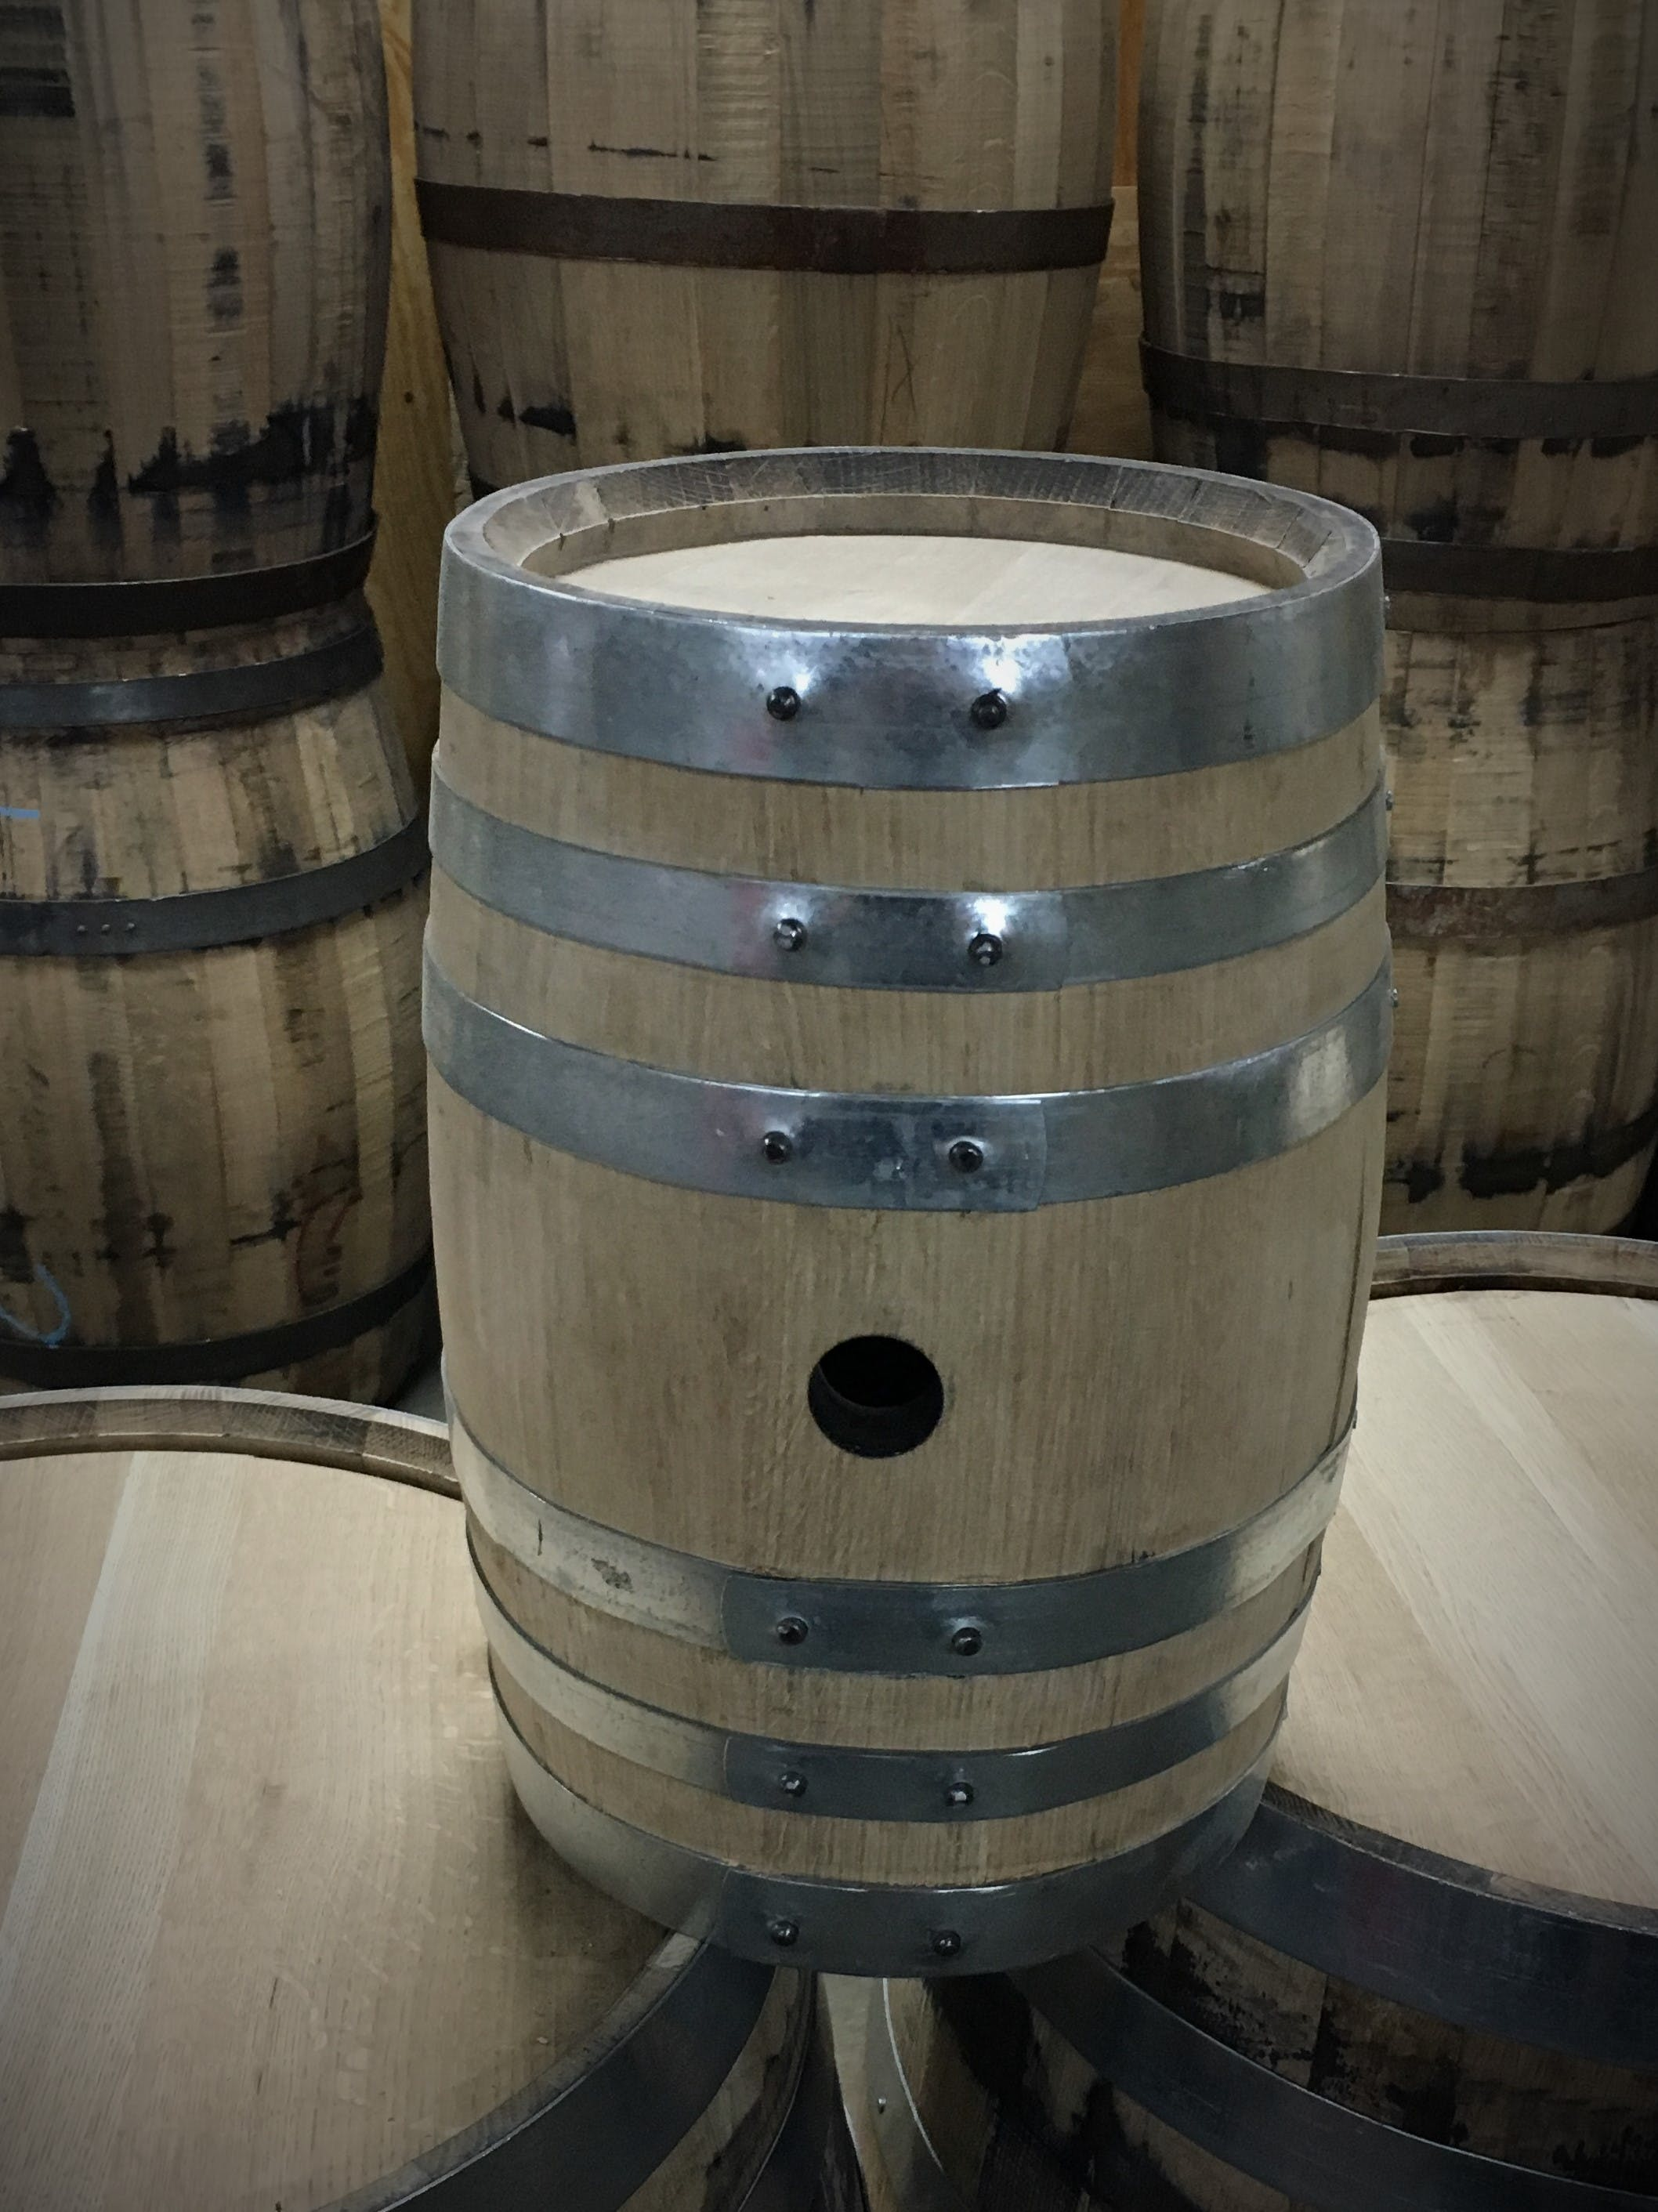 American Oak 5 Gallon Barrel (Whiskey/Spirit) Whiskey barrel sold by East Coast Wood Barrels